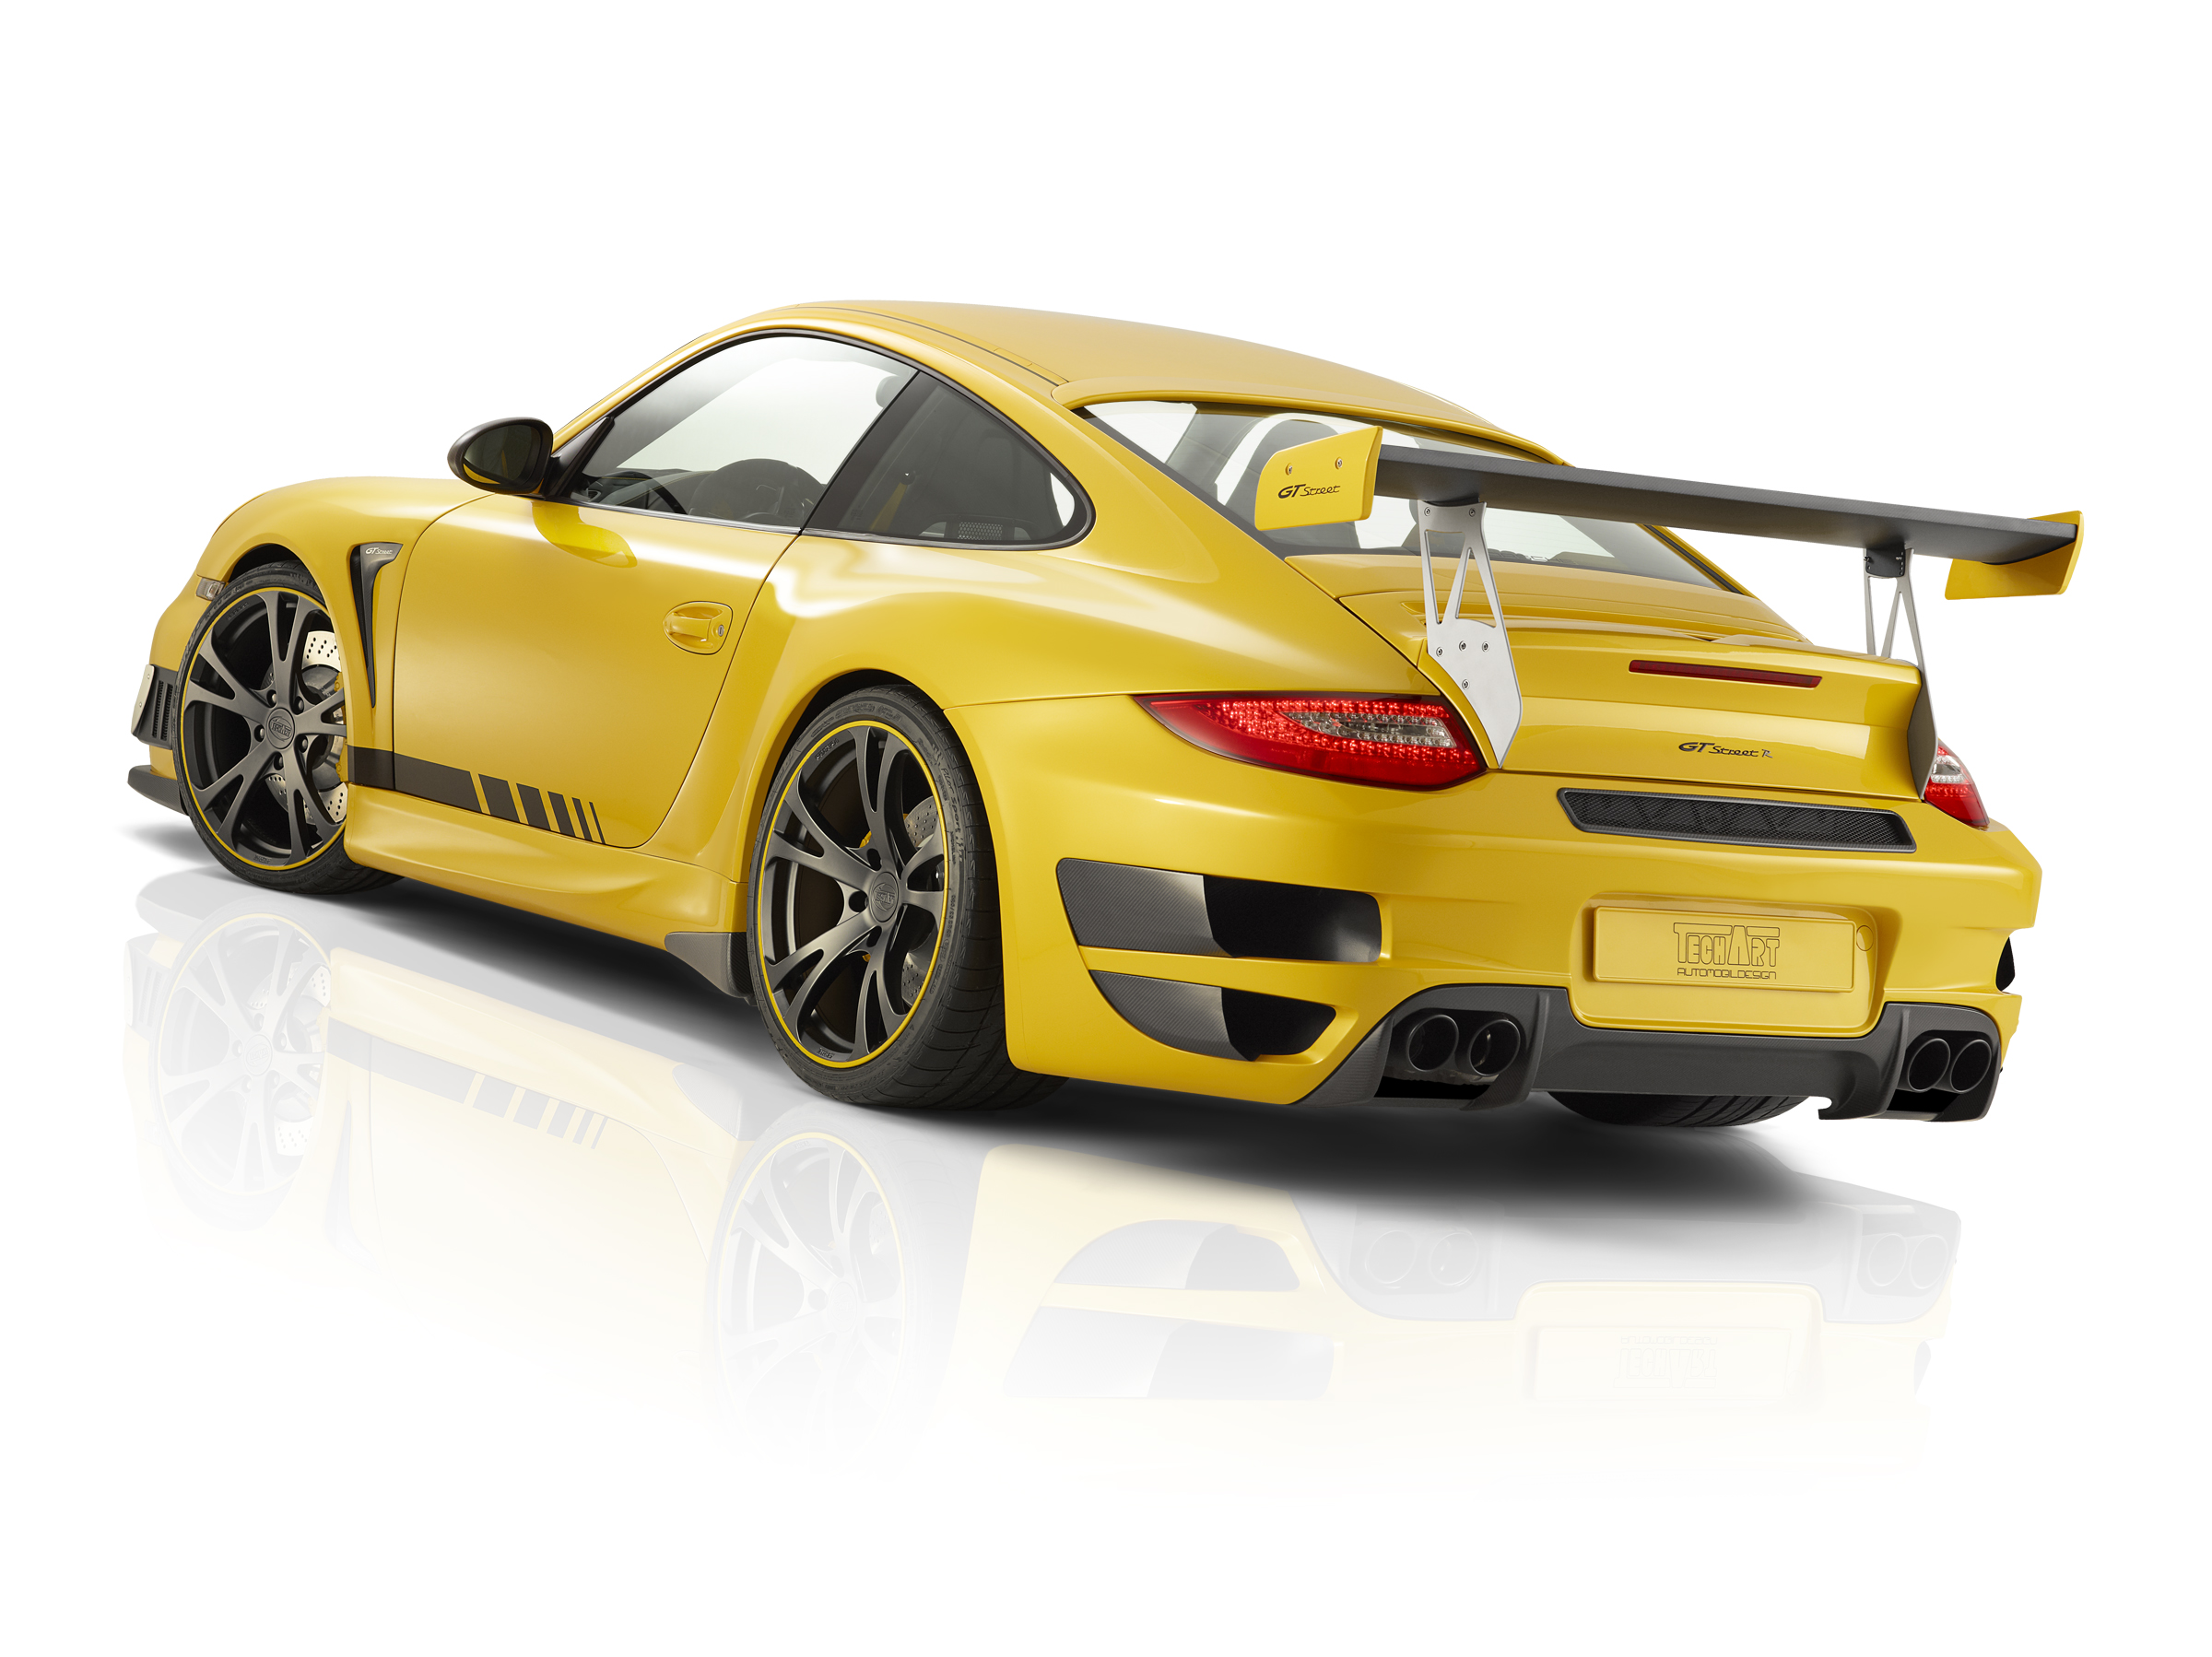 PORSCHE-GT-STREET-R-BY-TechArt-porsche-31562499-2400-1798 Remarkable Techart Porsche 911 Gt2 Gtstreet Rs Cars Trend